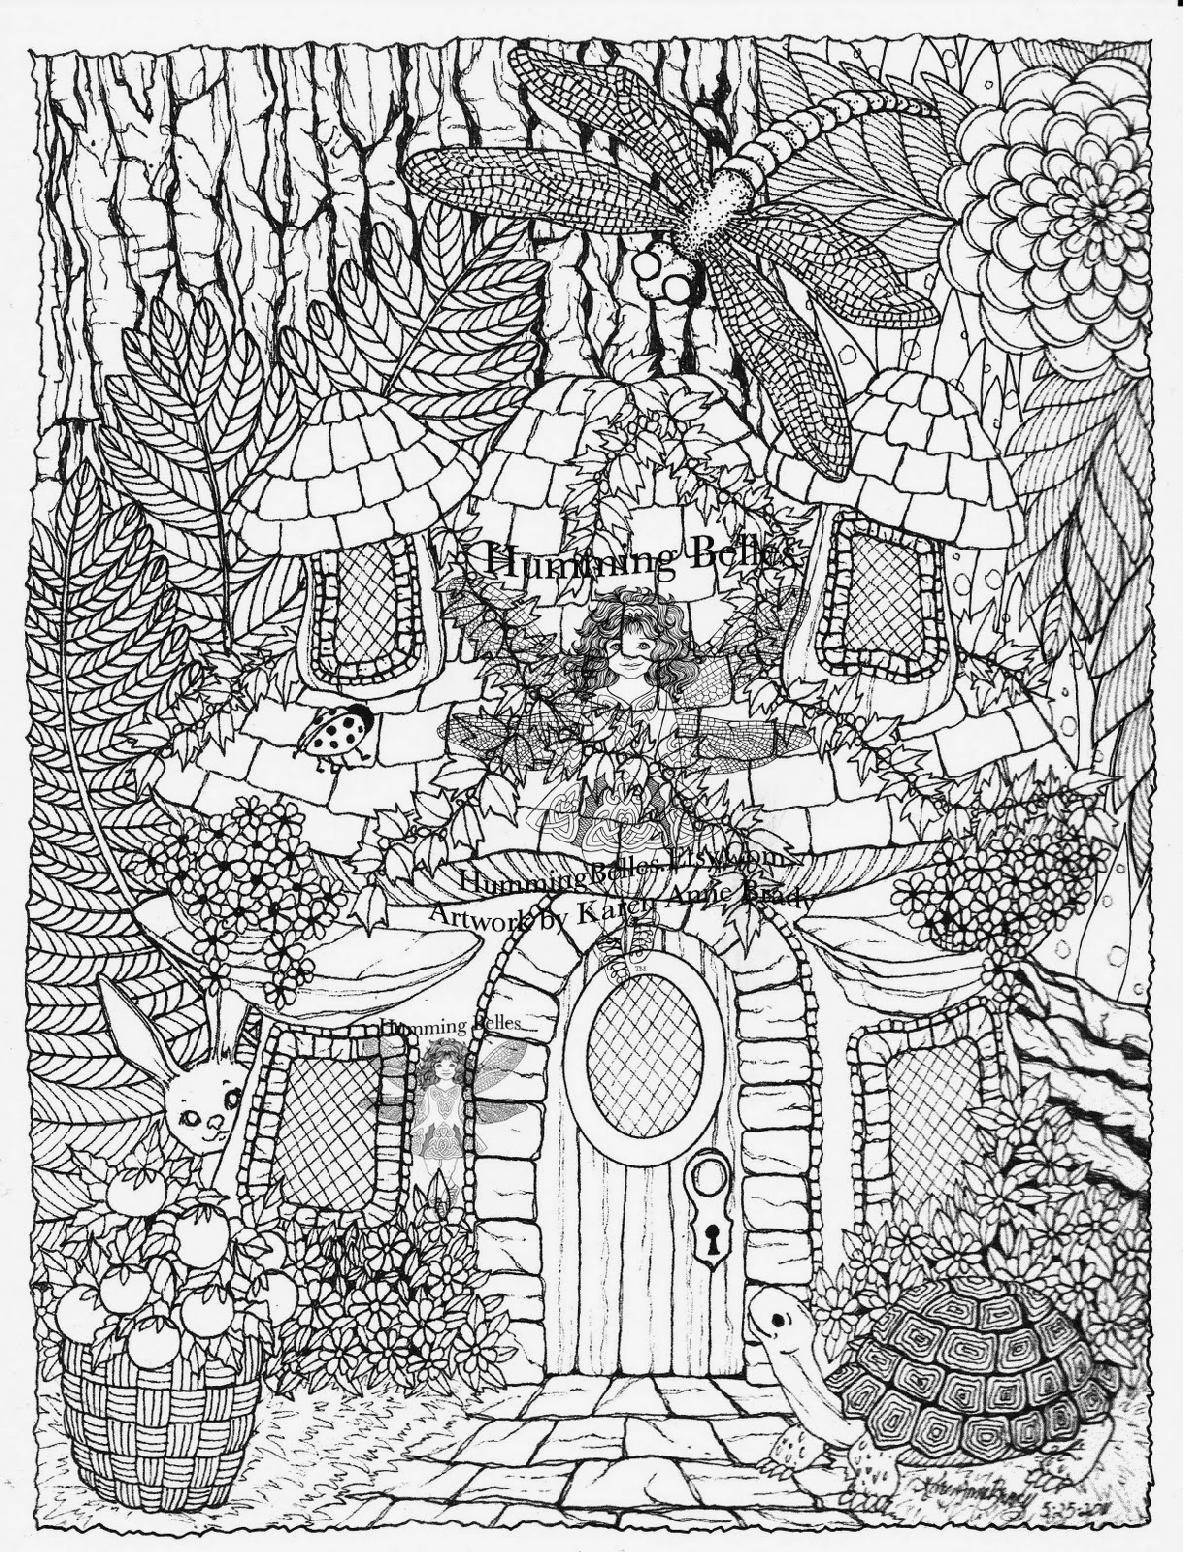 art pictures to color doodle art to color for kids doodle art kids coloring pages color to pictures art